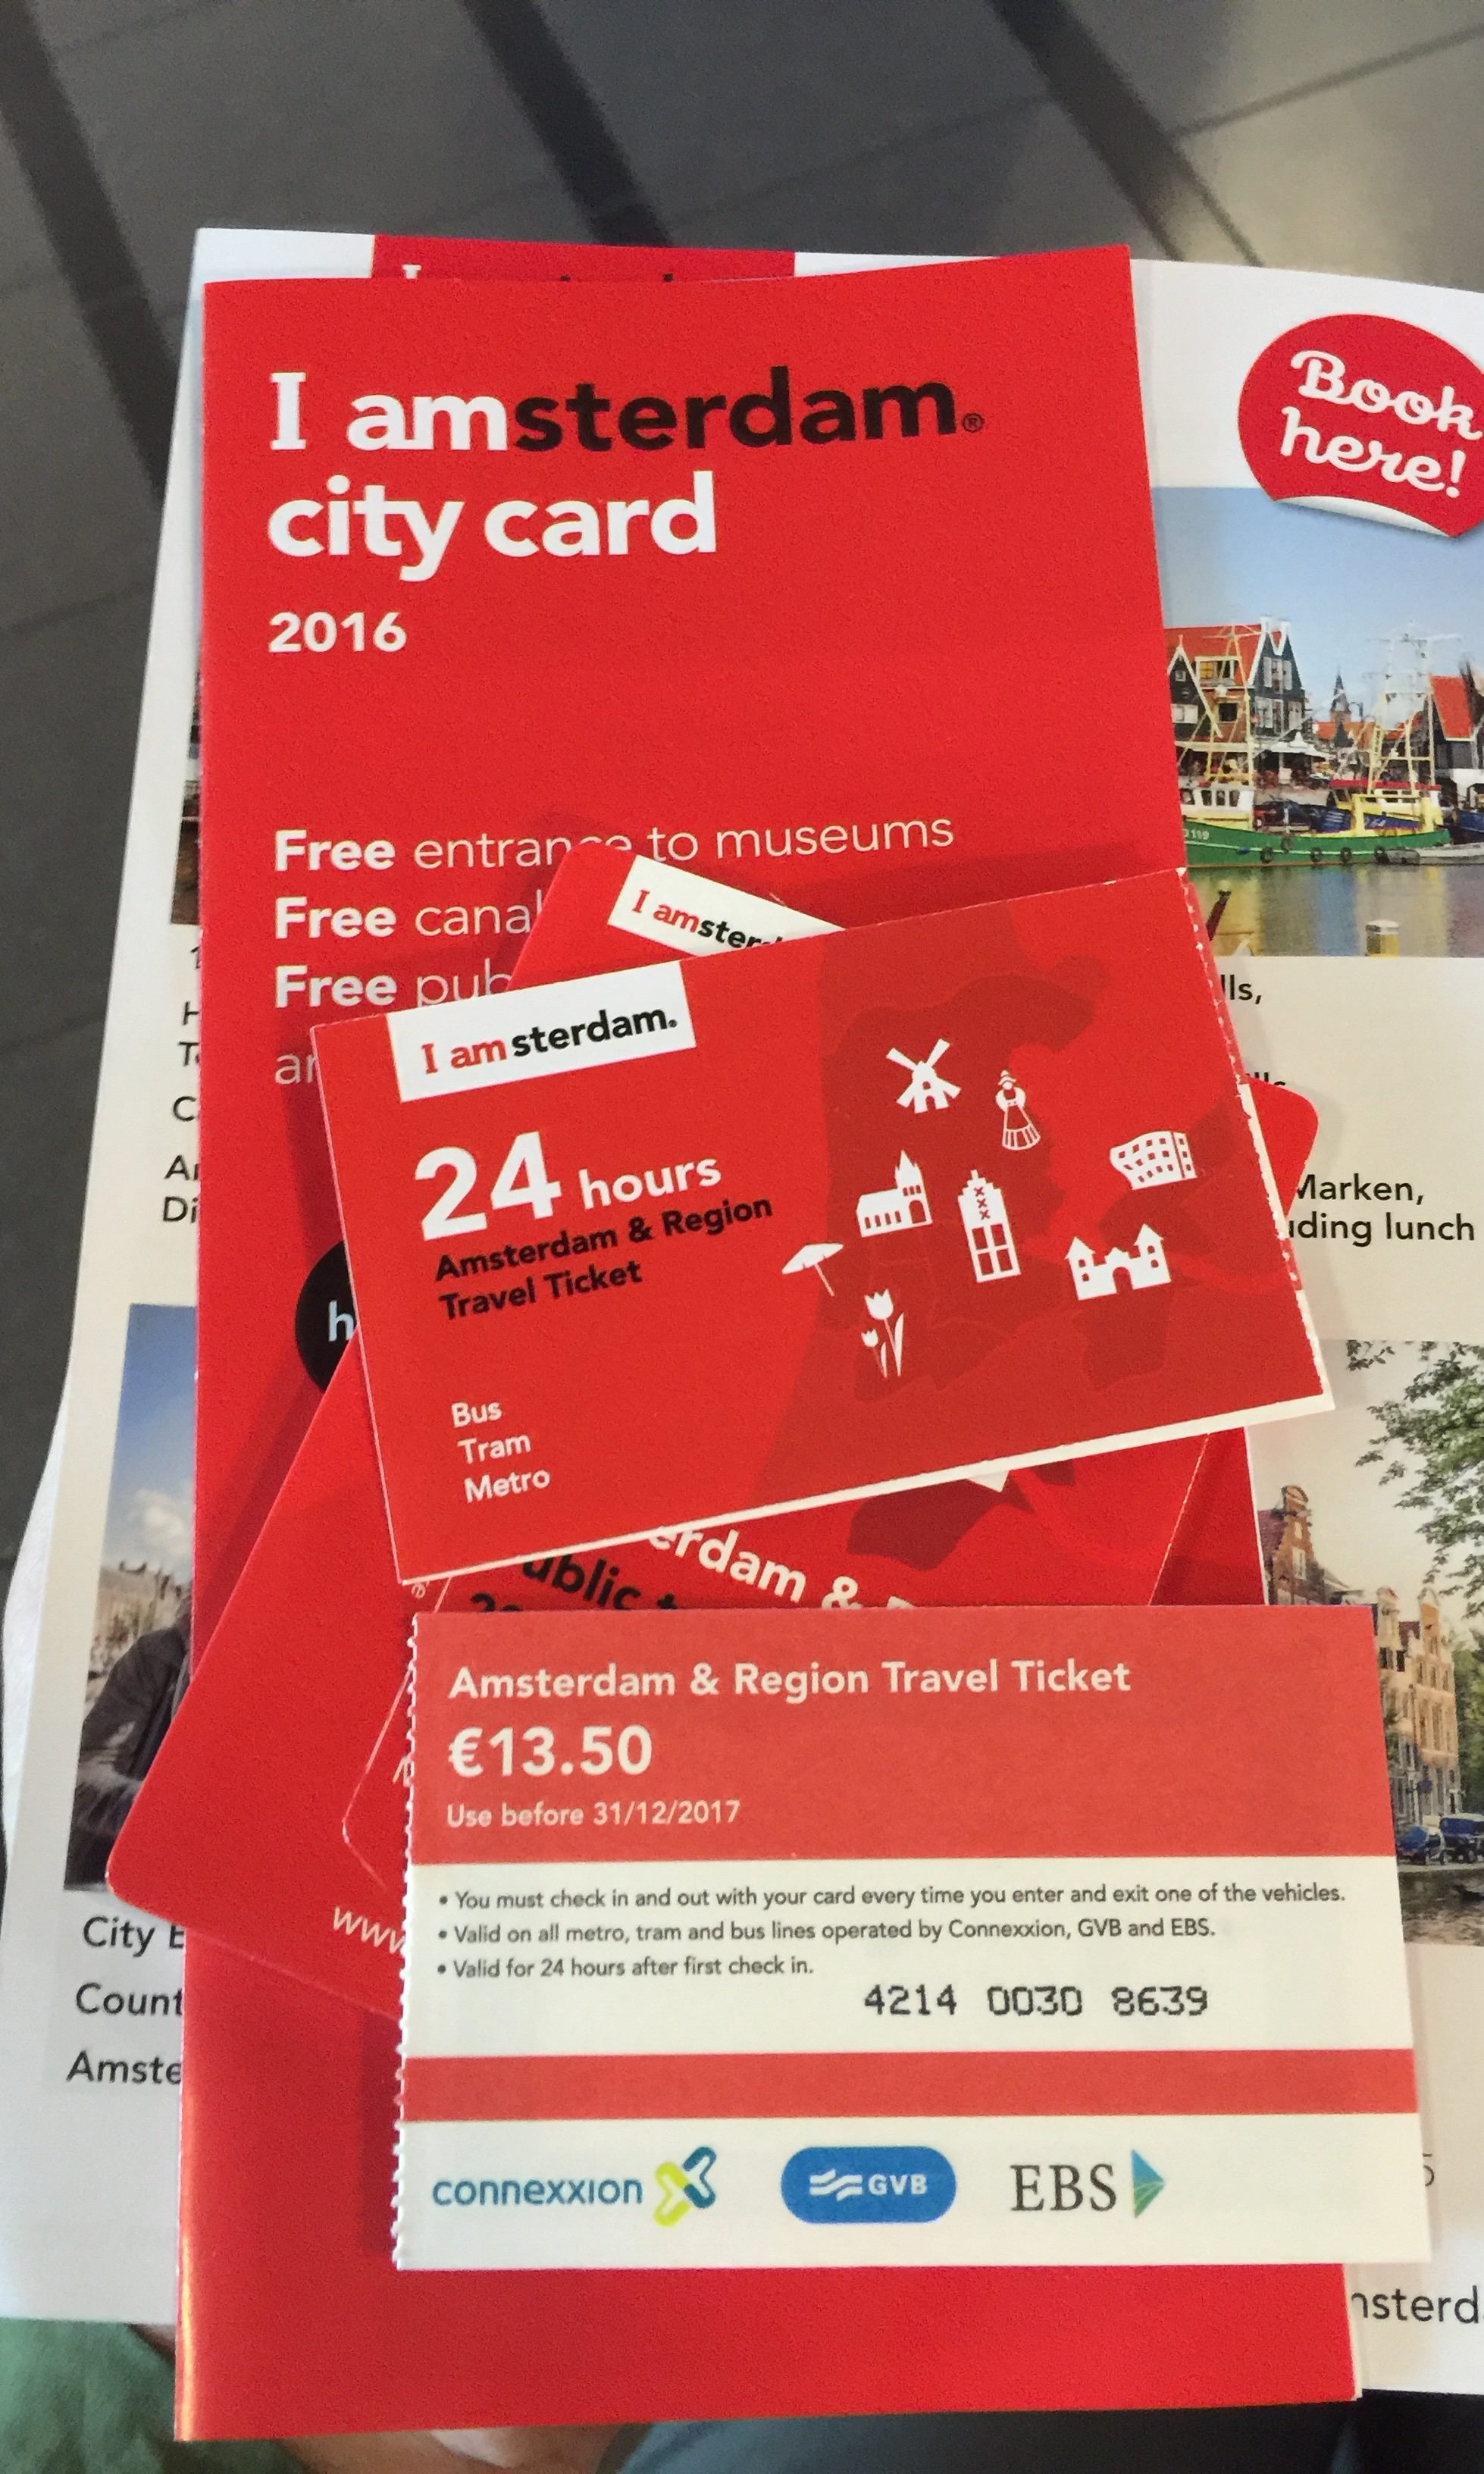 用1張Amsterdam & Region Travel Ticket玩阿姆斯特丹24小時